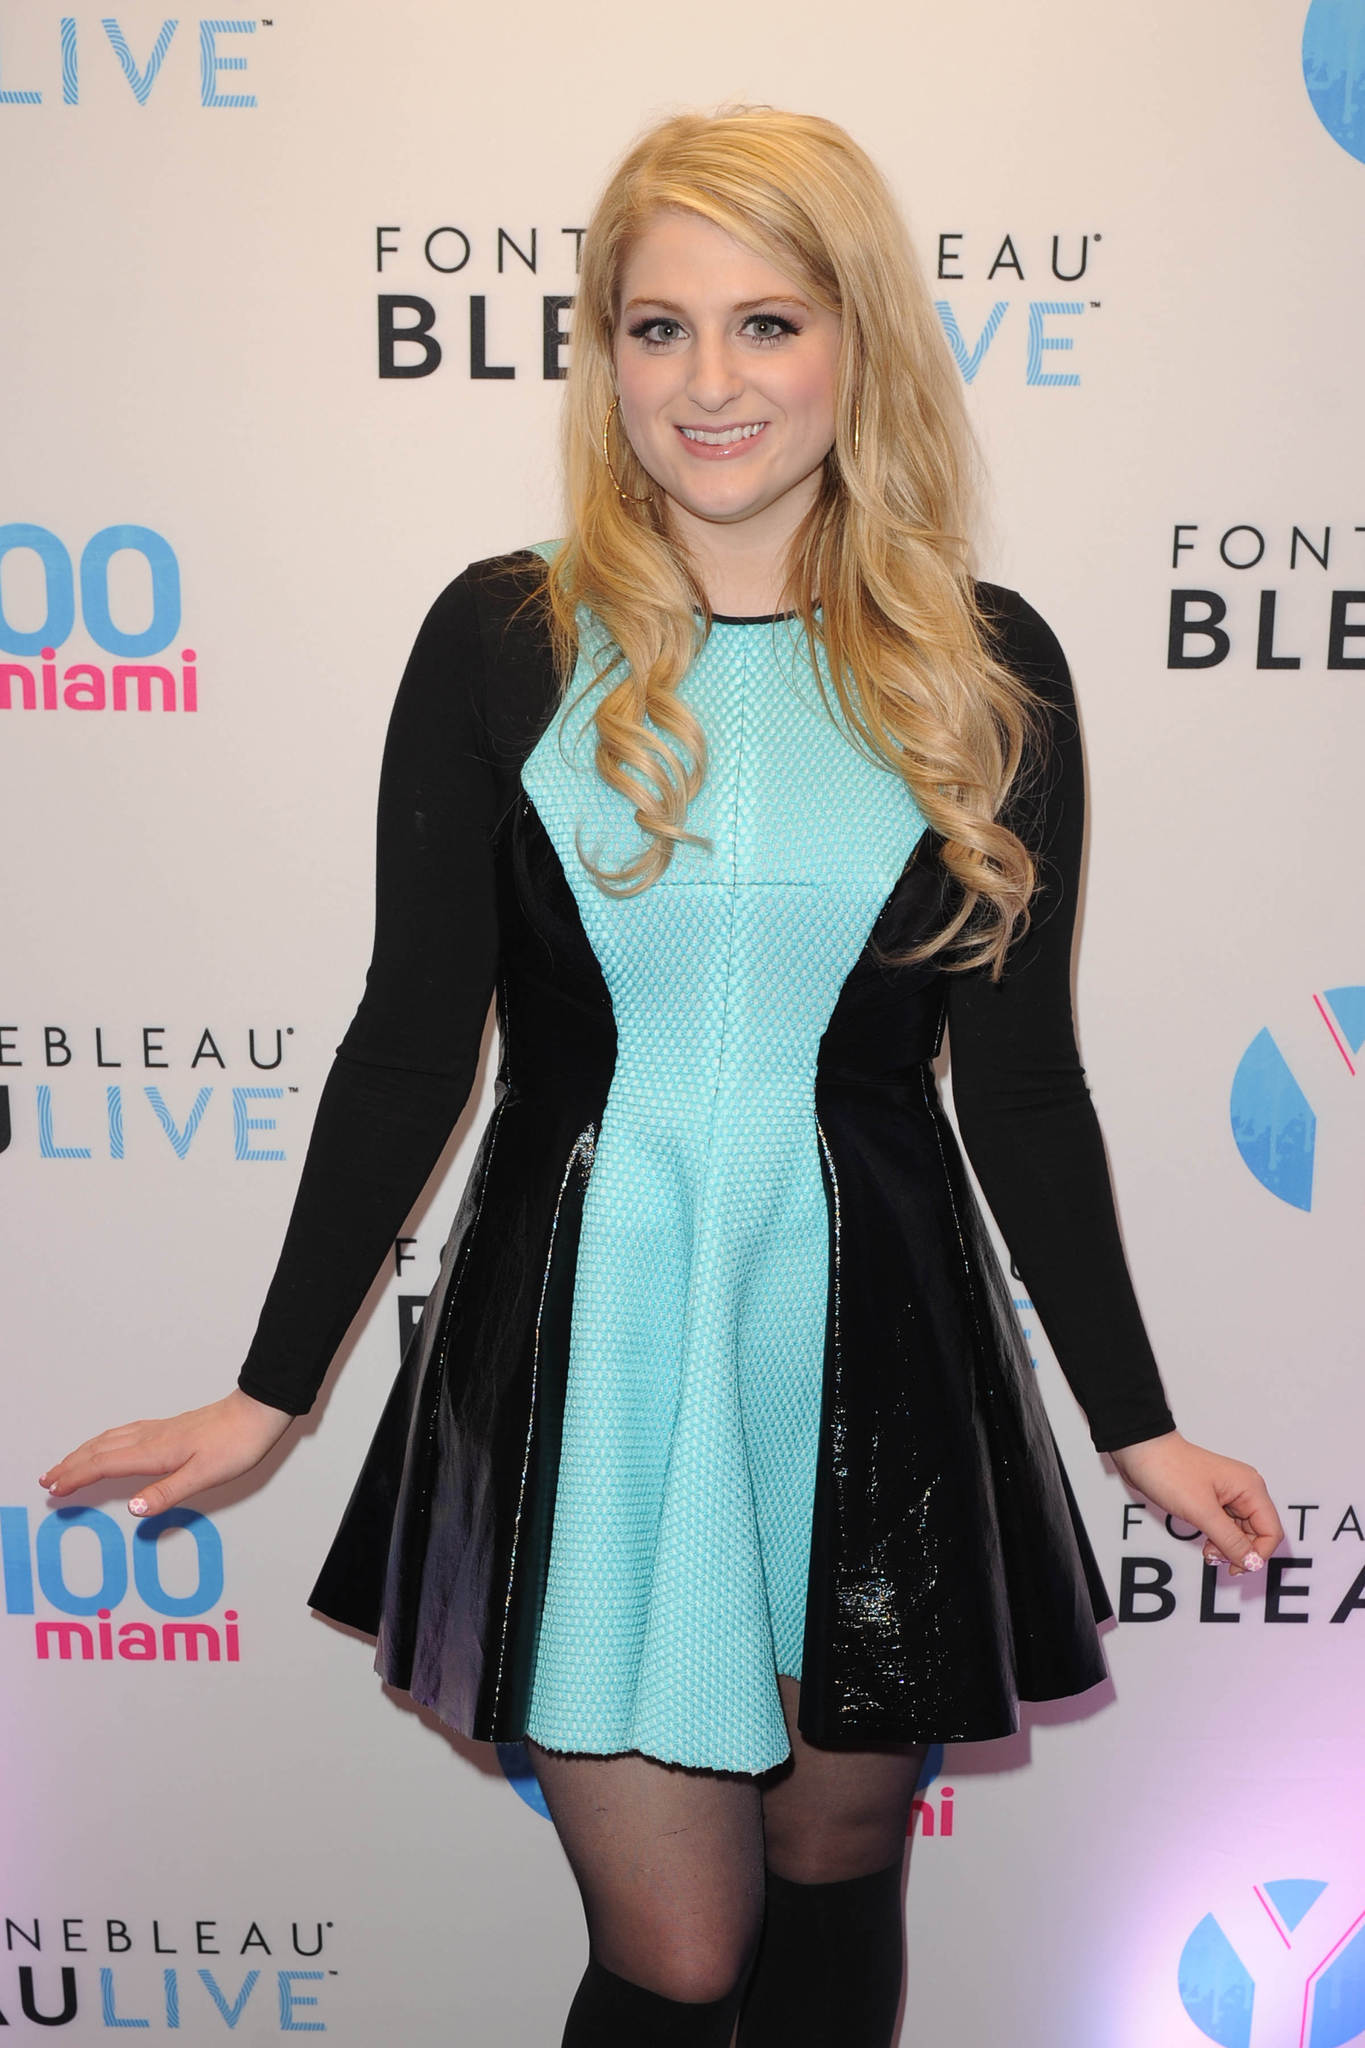 Meghan Trainor Hot Topless Images & Photos